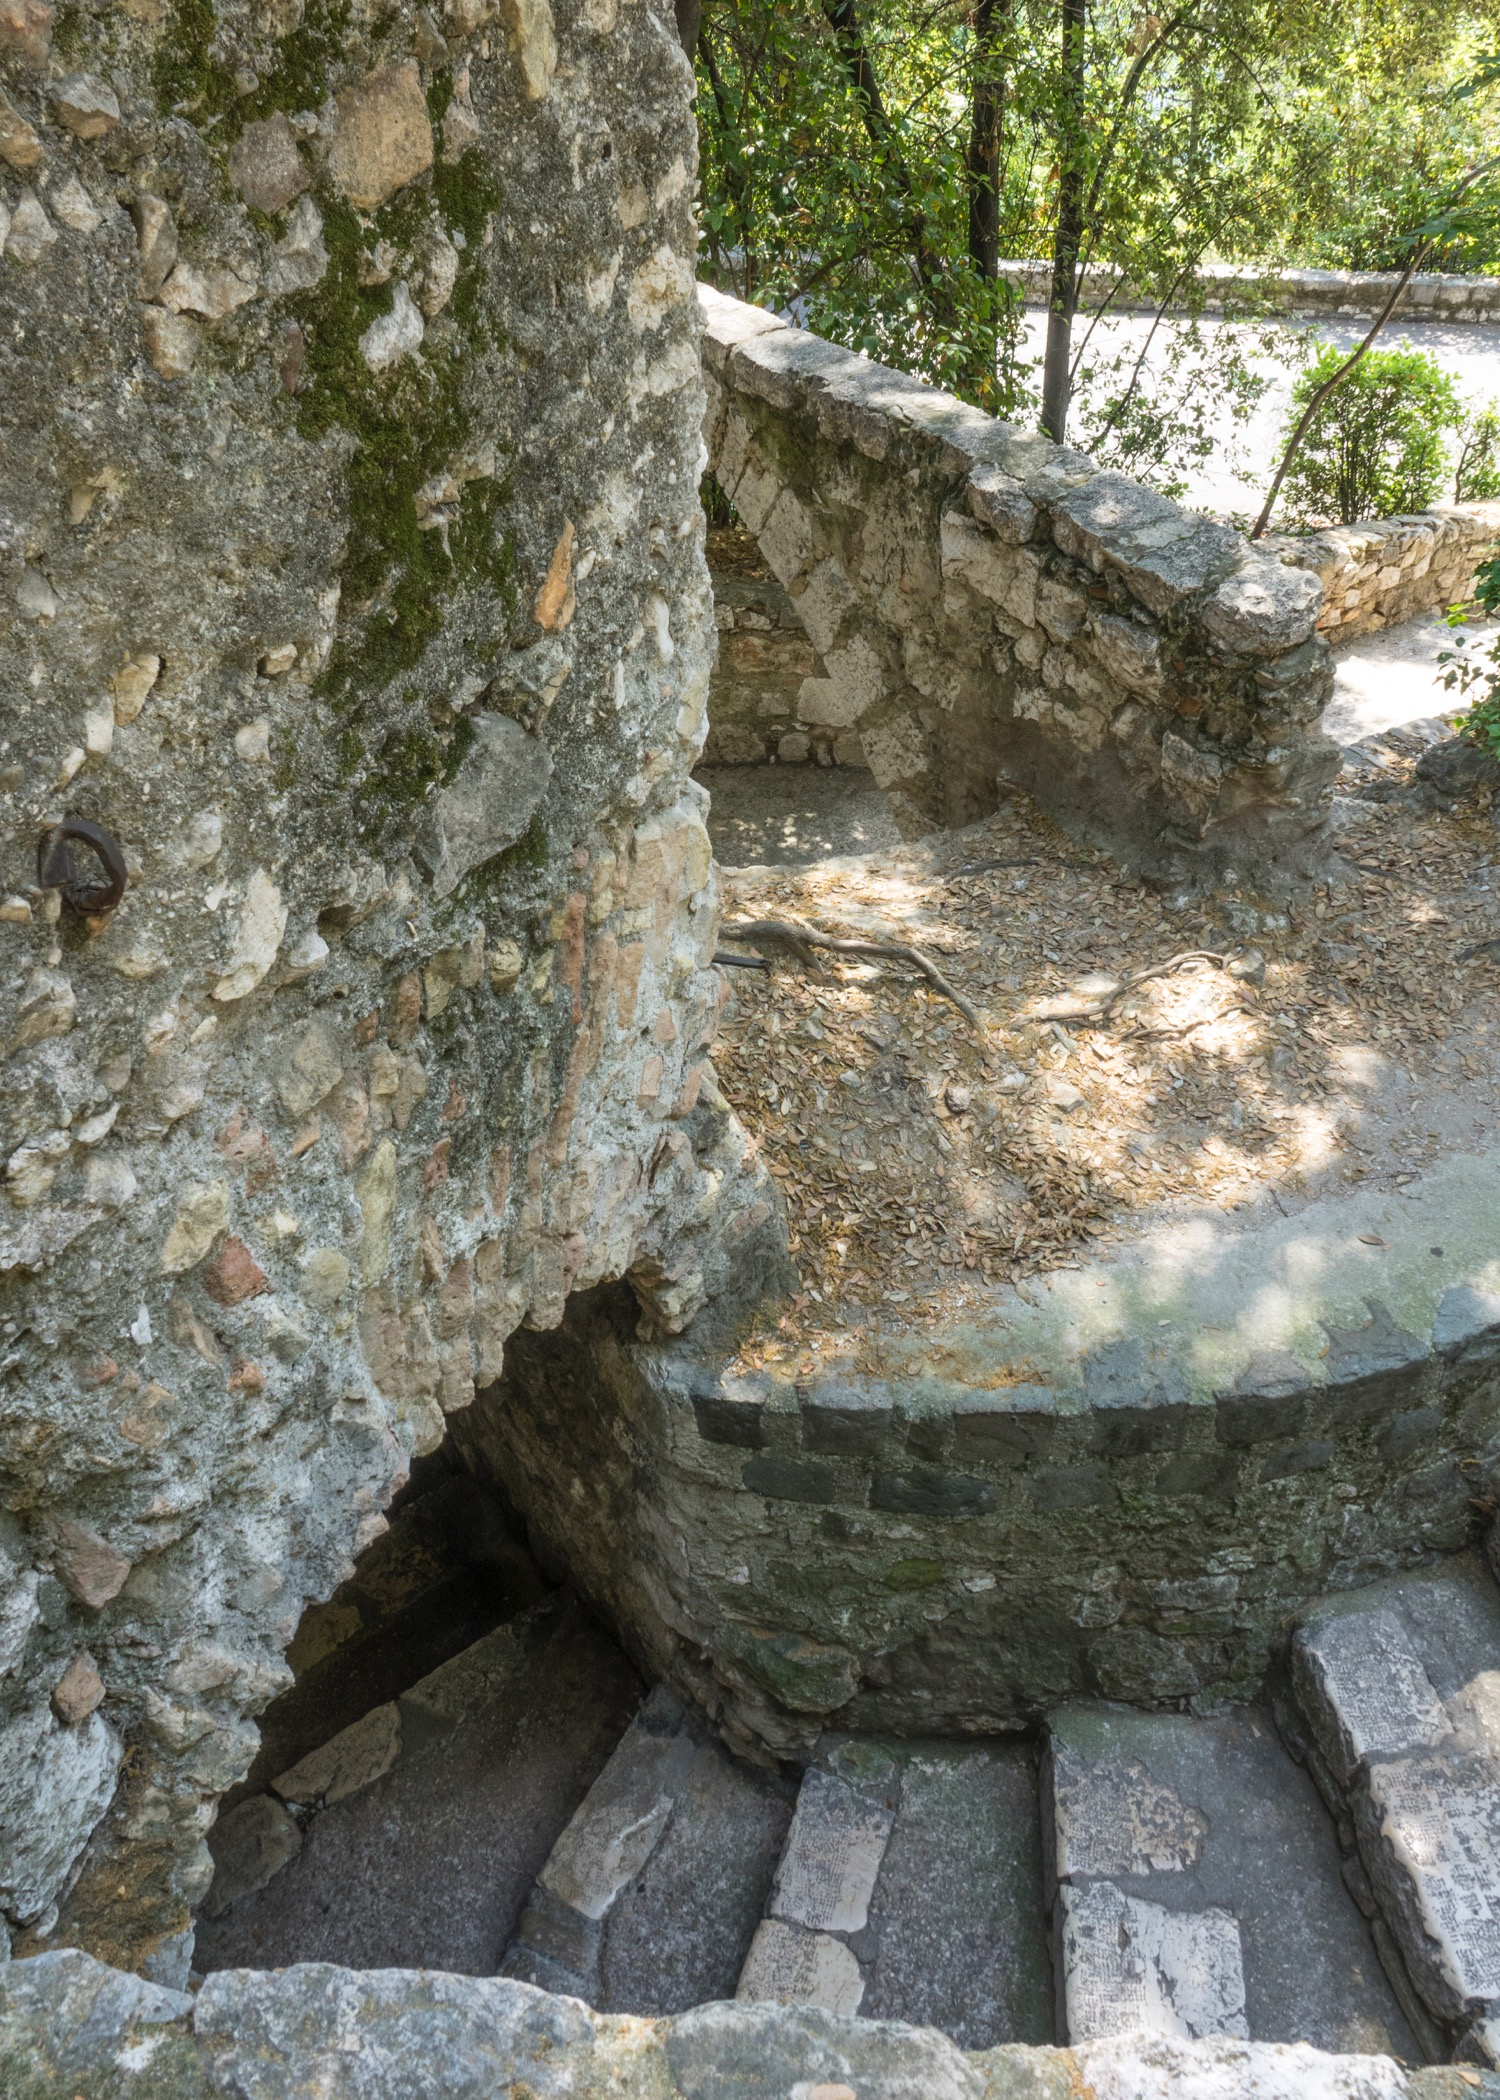 There were some original(?) fortifications left that you could explore